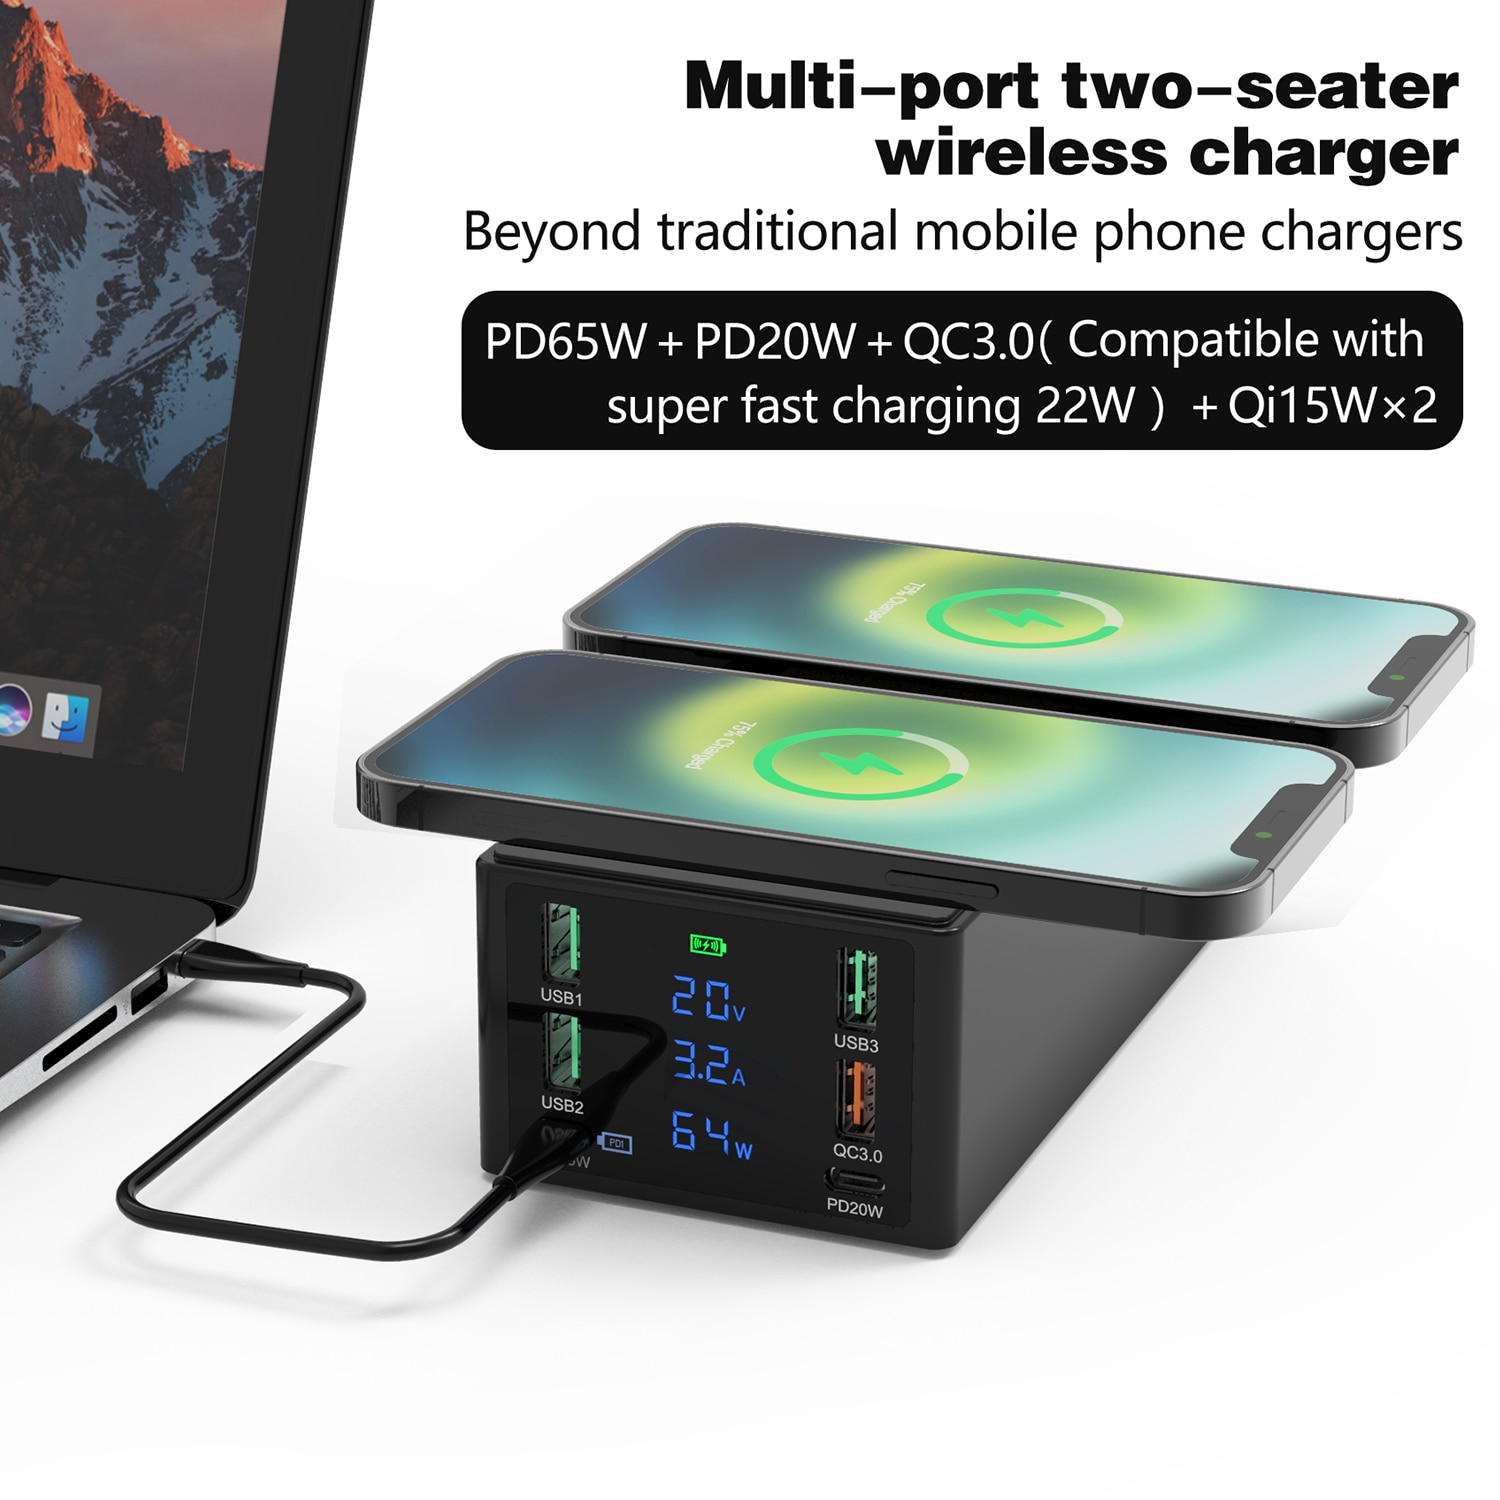 ilepo-150w-usb-charger-qc3-0-fast-wireless-charger-for-iphone-11-12-pro-max-multi-port-65w-pd-charger-charging-dock-station